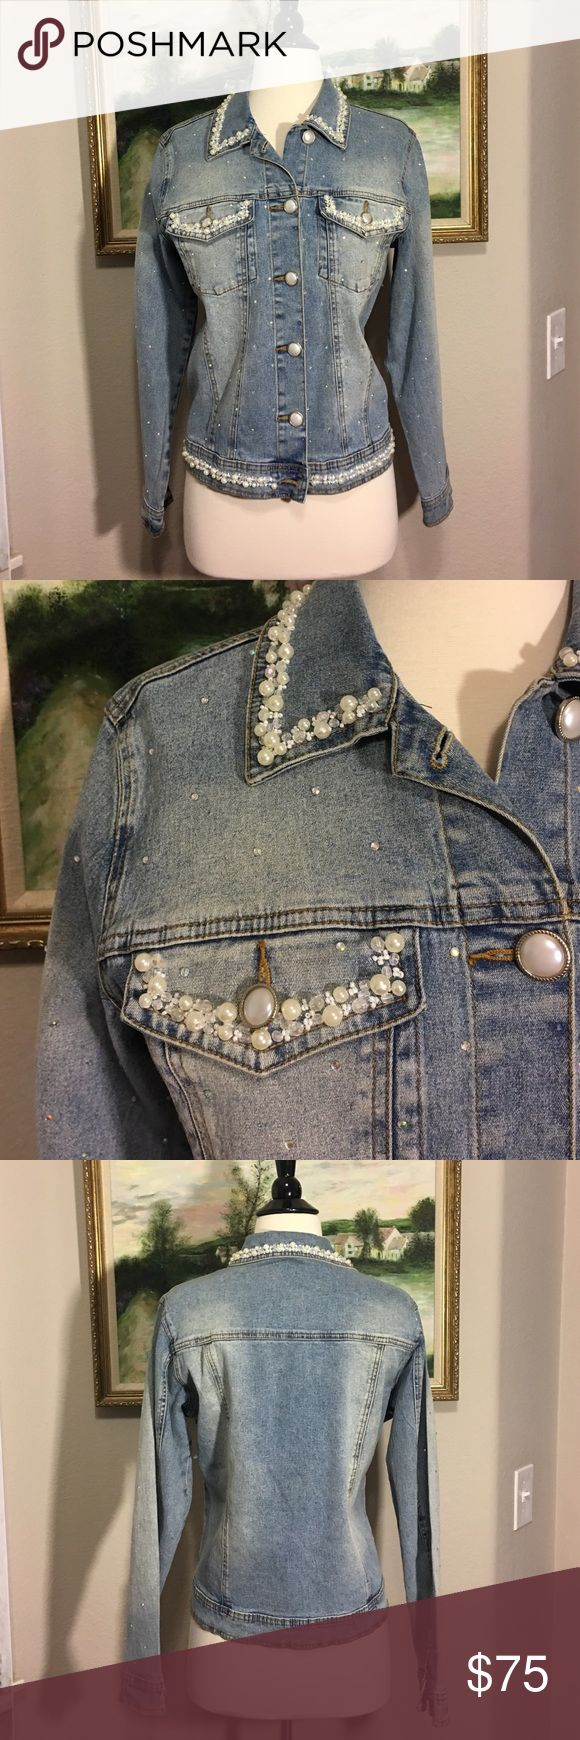 "DG2 by Diane Gilman Embellished Denim Jacket Where do I start?! This gorgeous, denim jacket is covered in rhinestones and pearls and sequins!! The detail on it is just amazing!! In perfect used condition, like it's never been worn. Length of jacket laying flat is 22"". This is a size small but could easily fit a large medium! DG2 by Diane Gilman Jackets & Coats Jean Jackets"